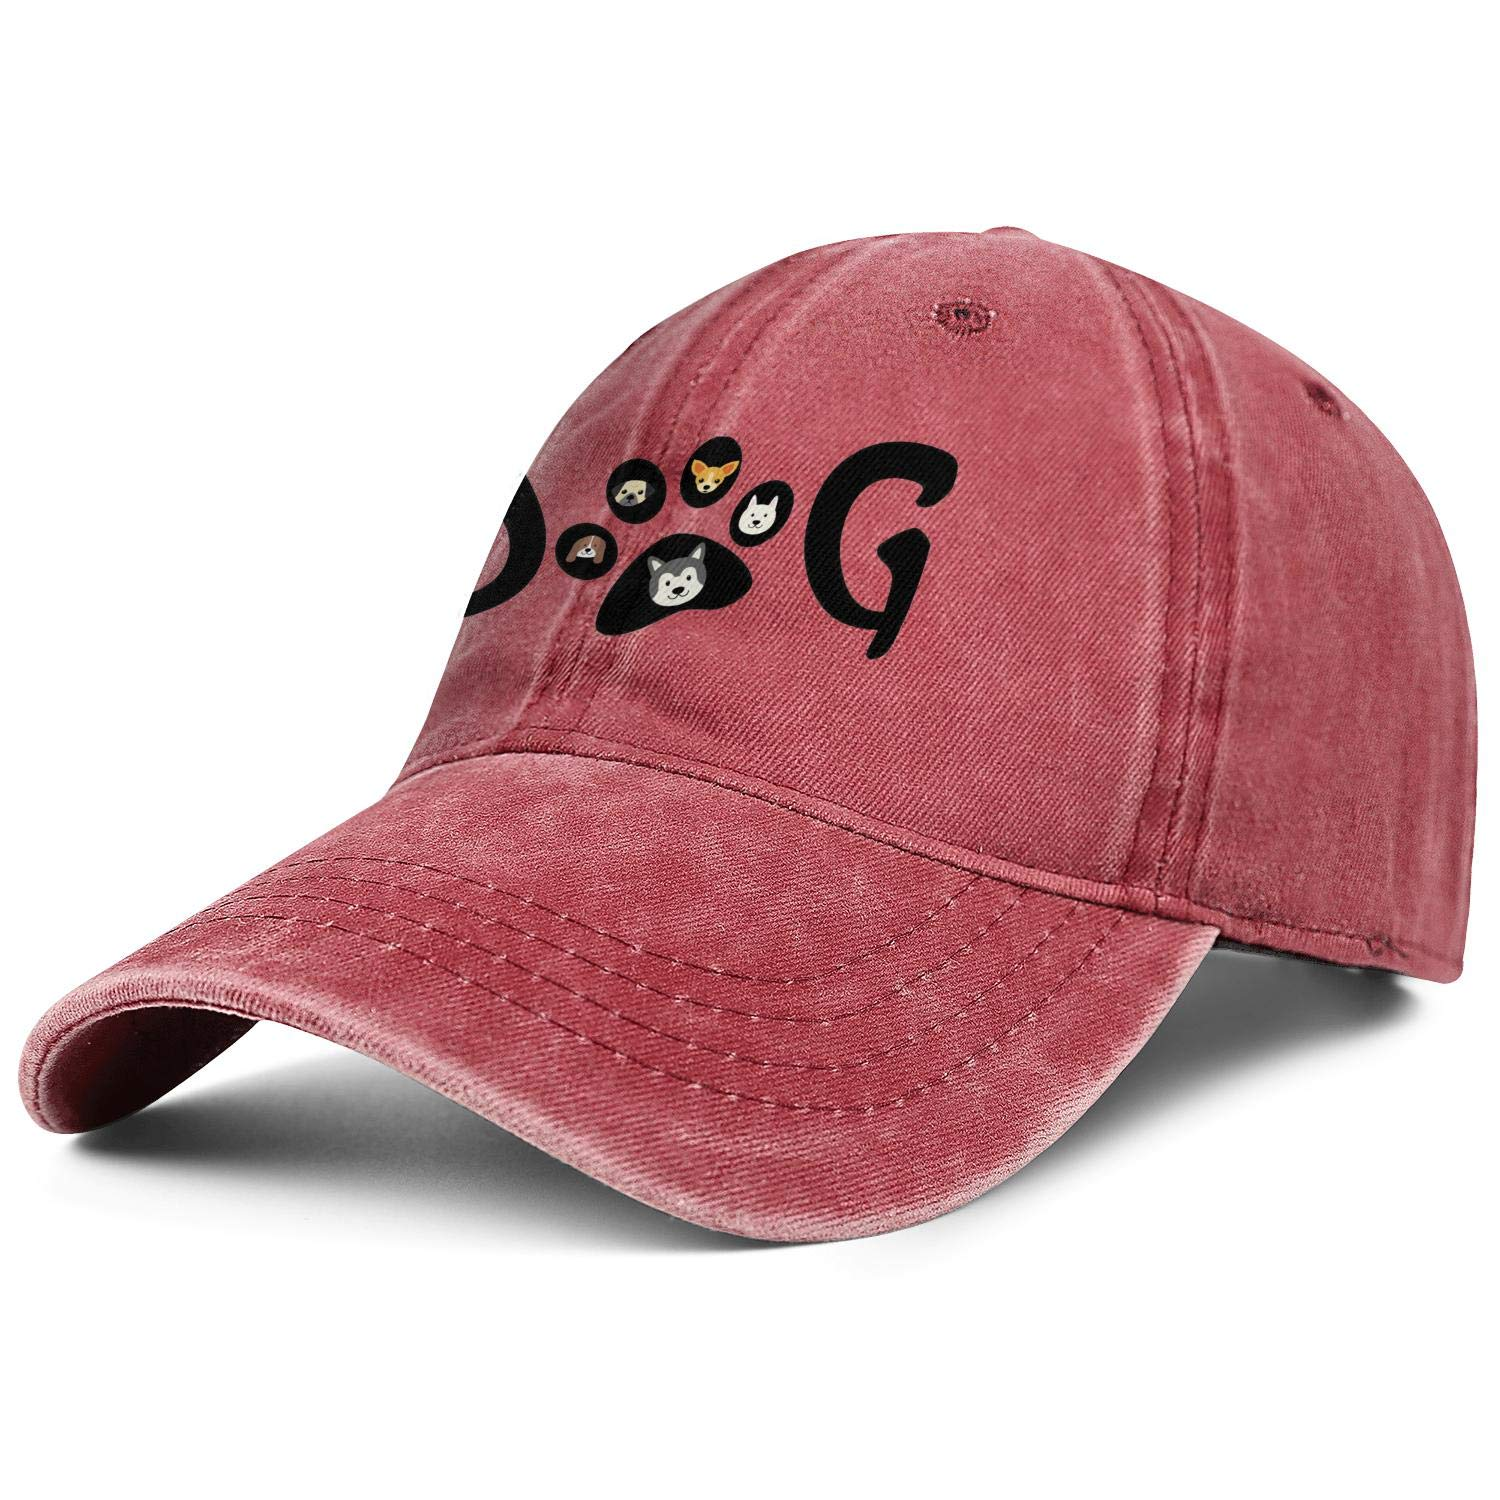 Cute Dog The Humans Friend Unisex Baseball Cap Cooling Sport Hats Adjustable Trucker Caps Dad-Hat